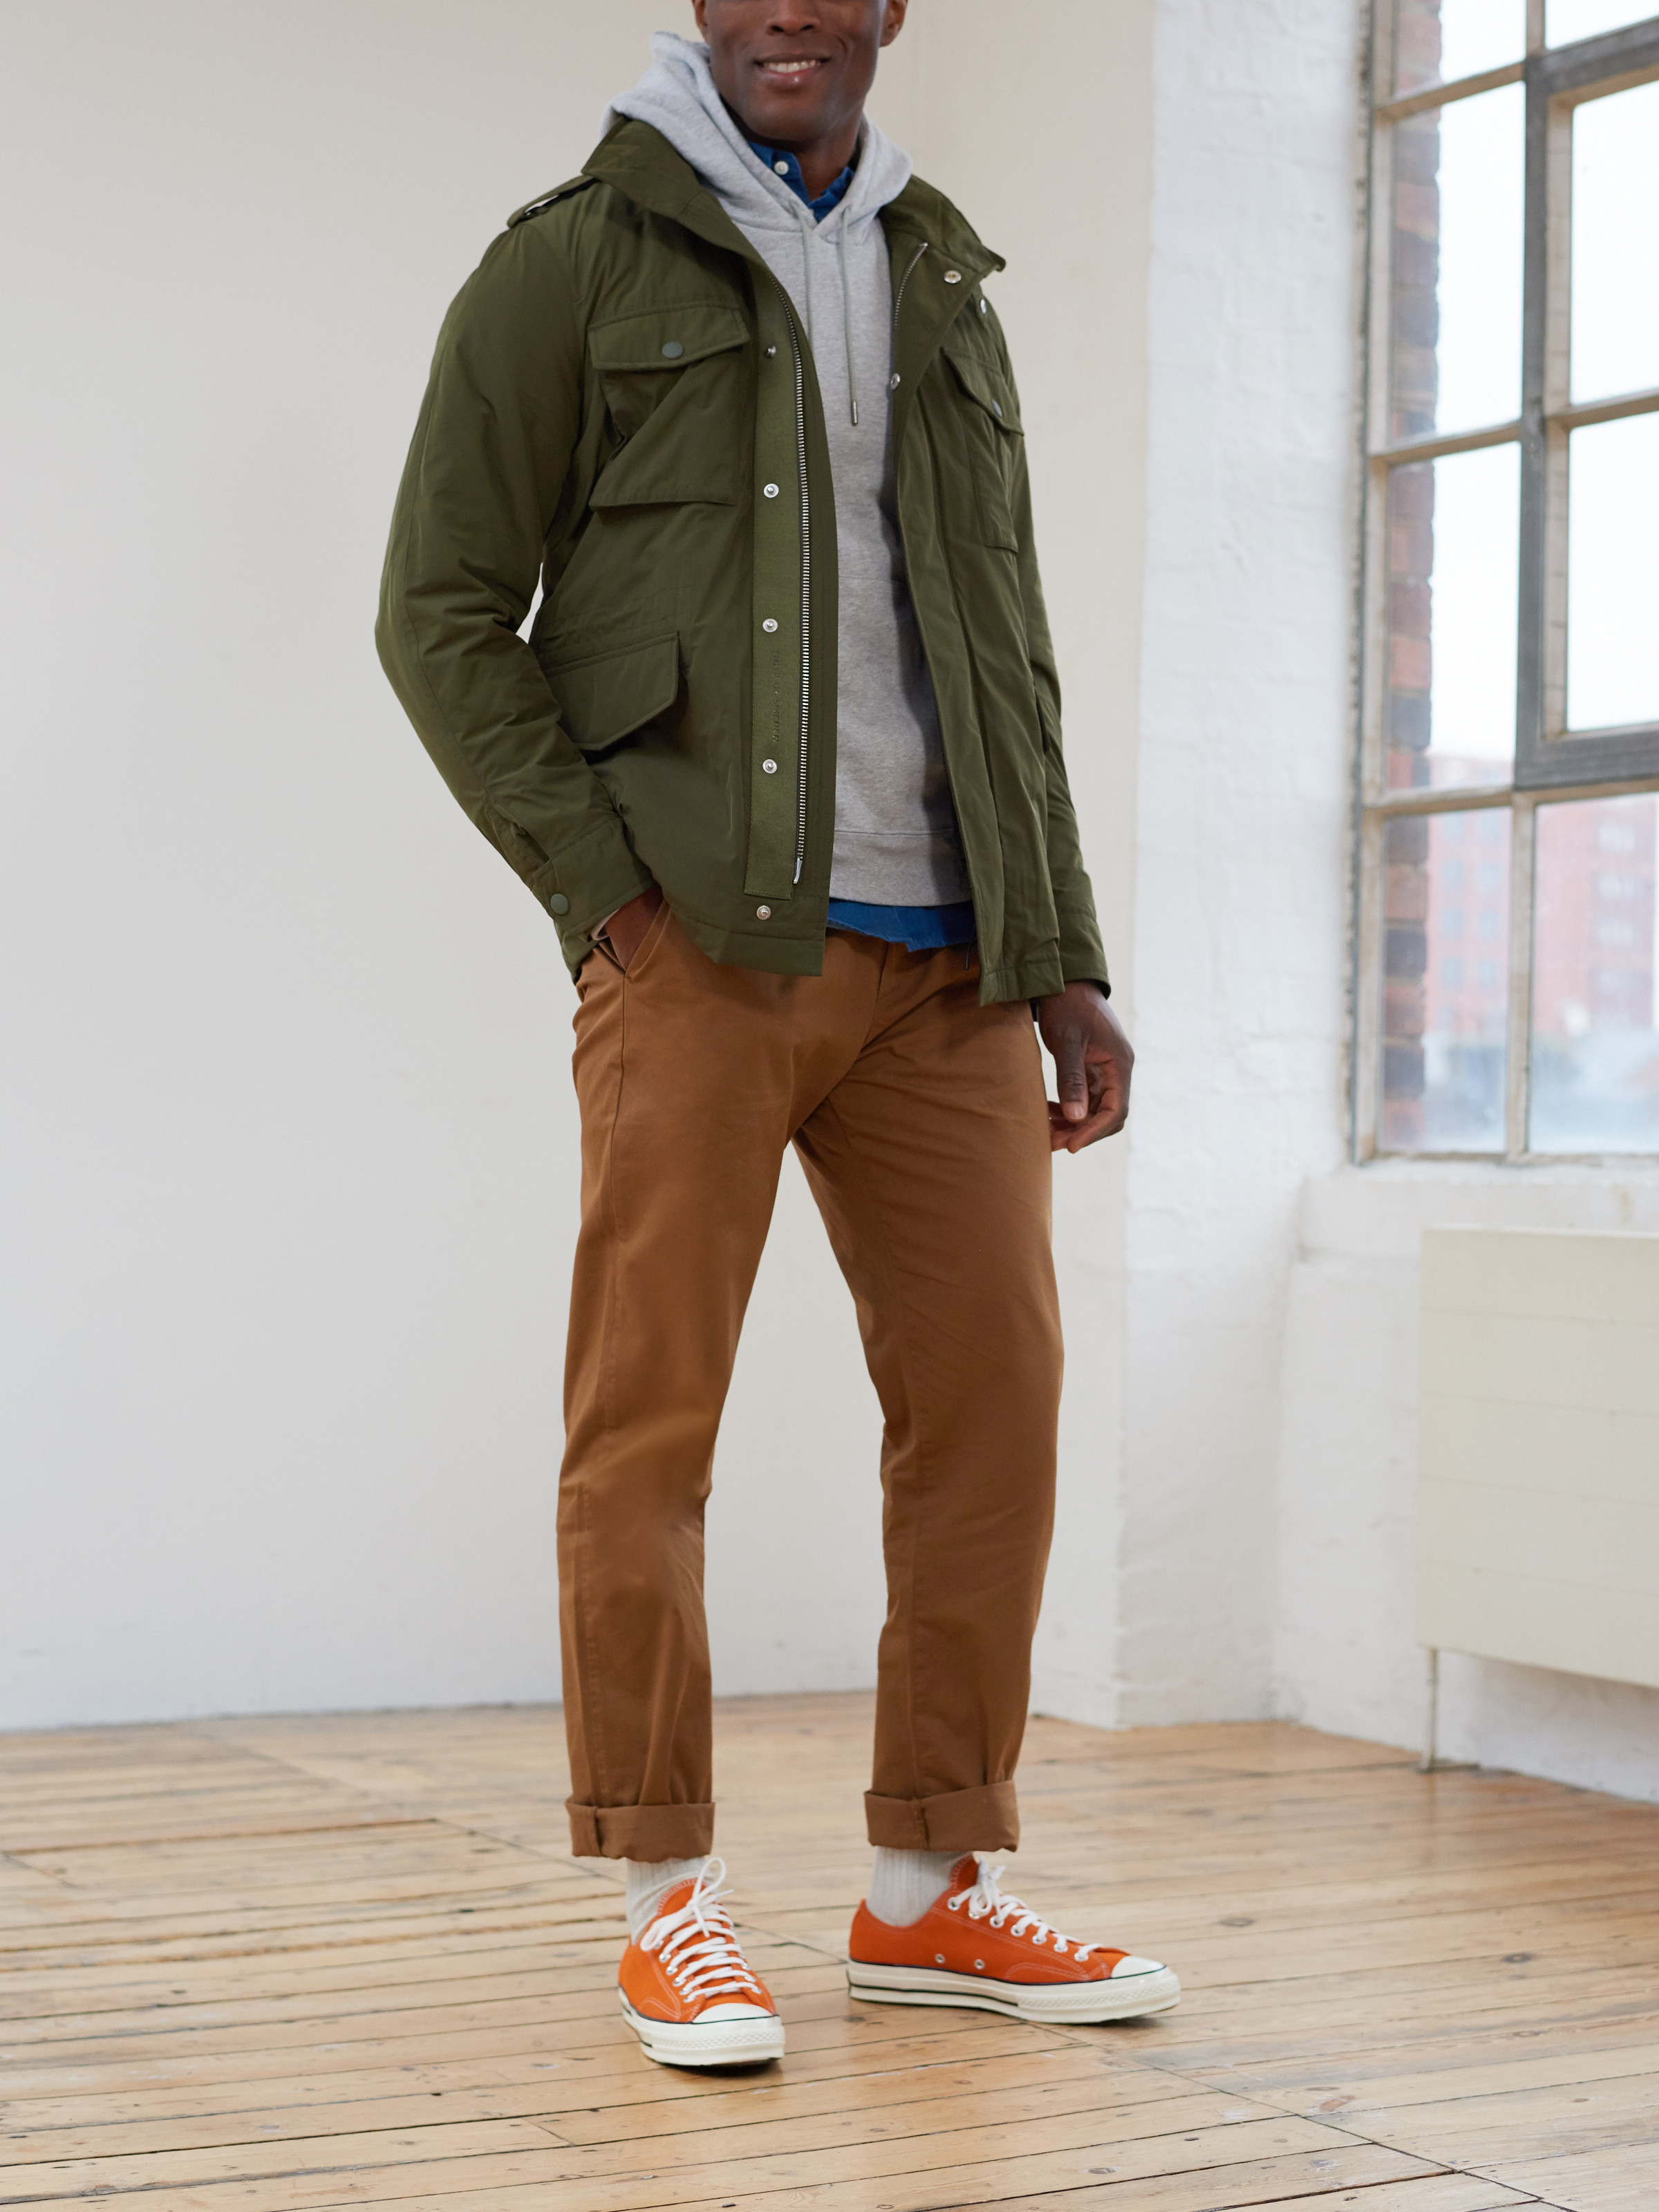 Men's outfit idea for 2021 with green field jacket, gray hoodie, denim shirt, brown chinos. Suitable for fall and winter.